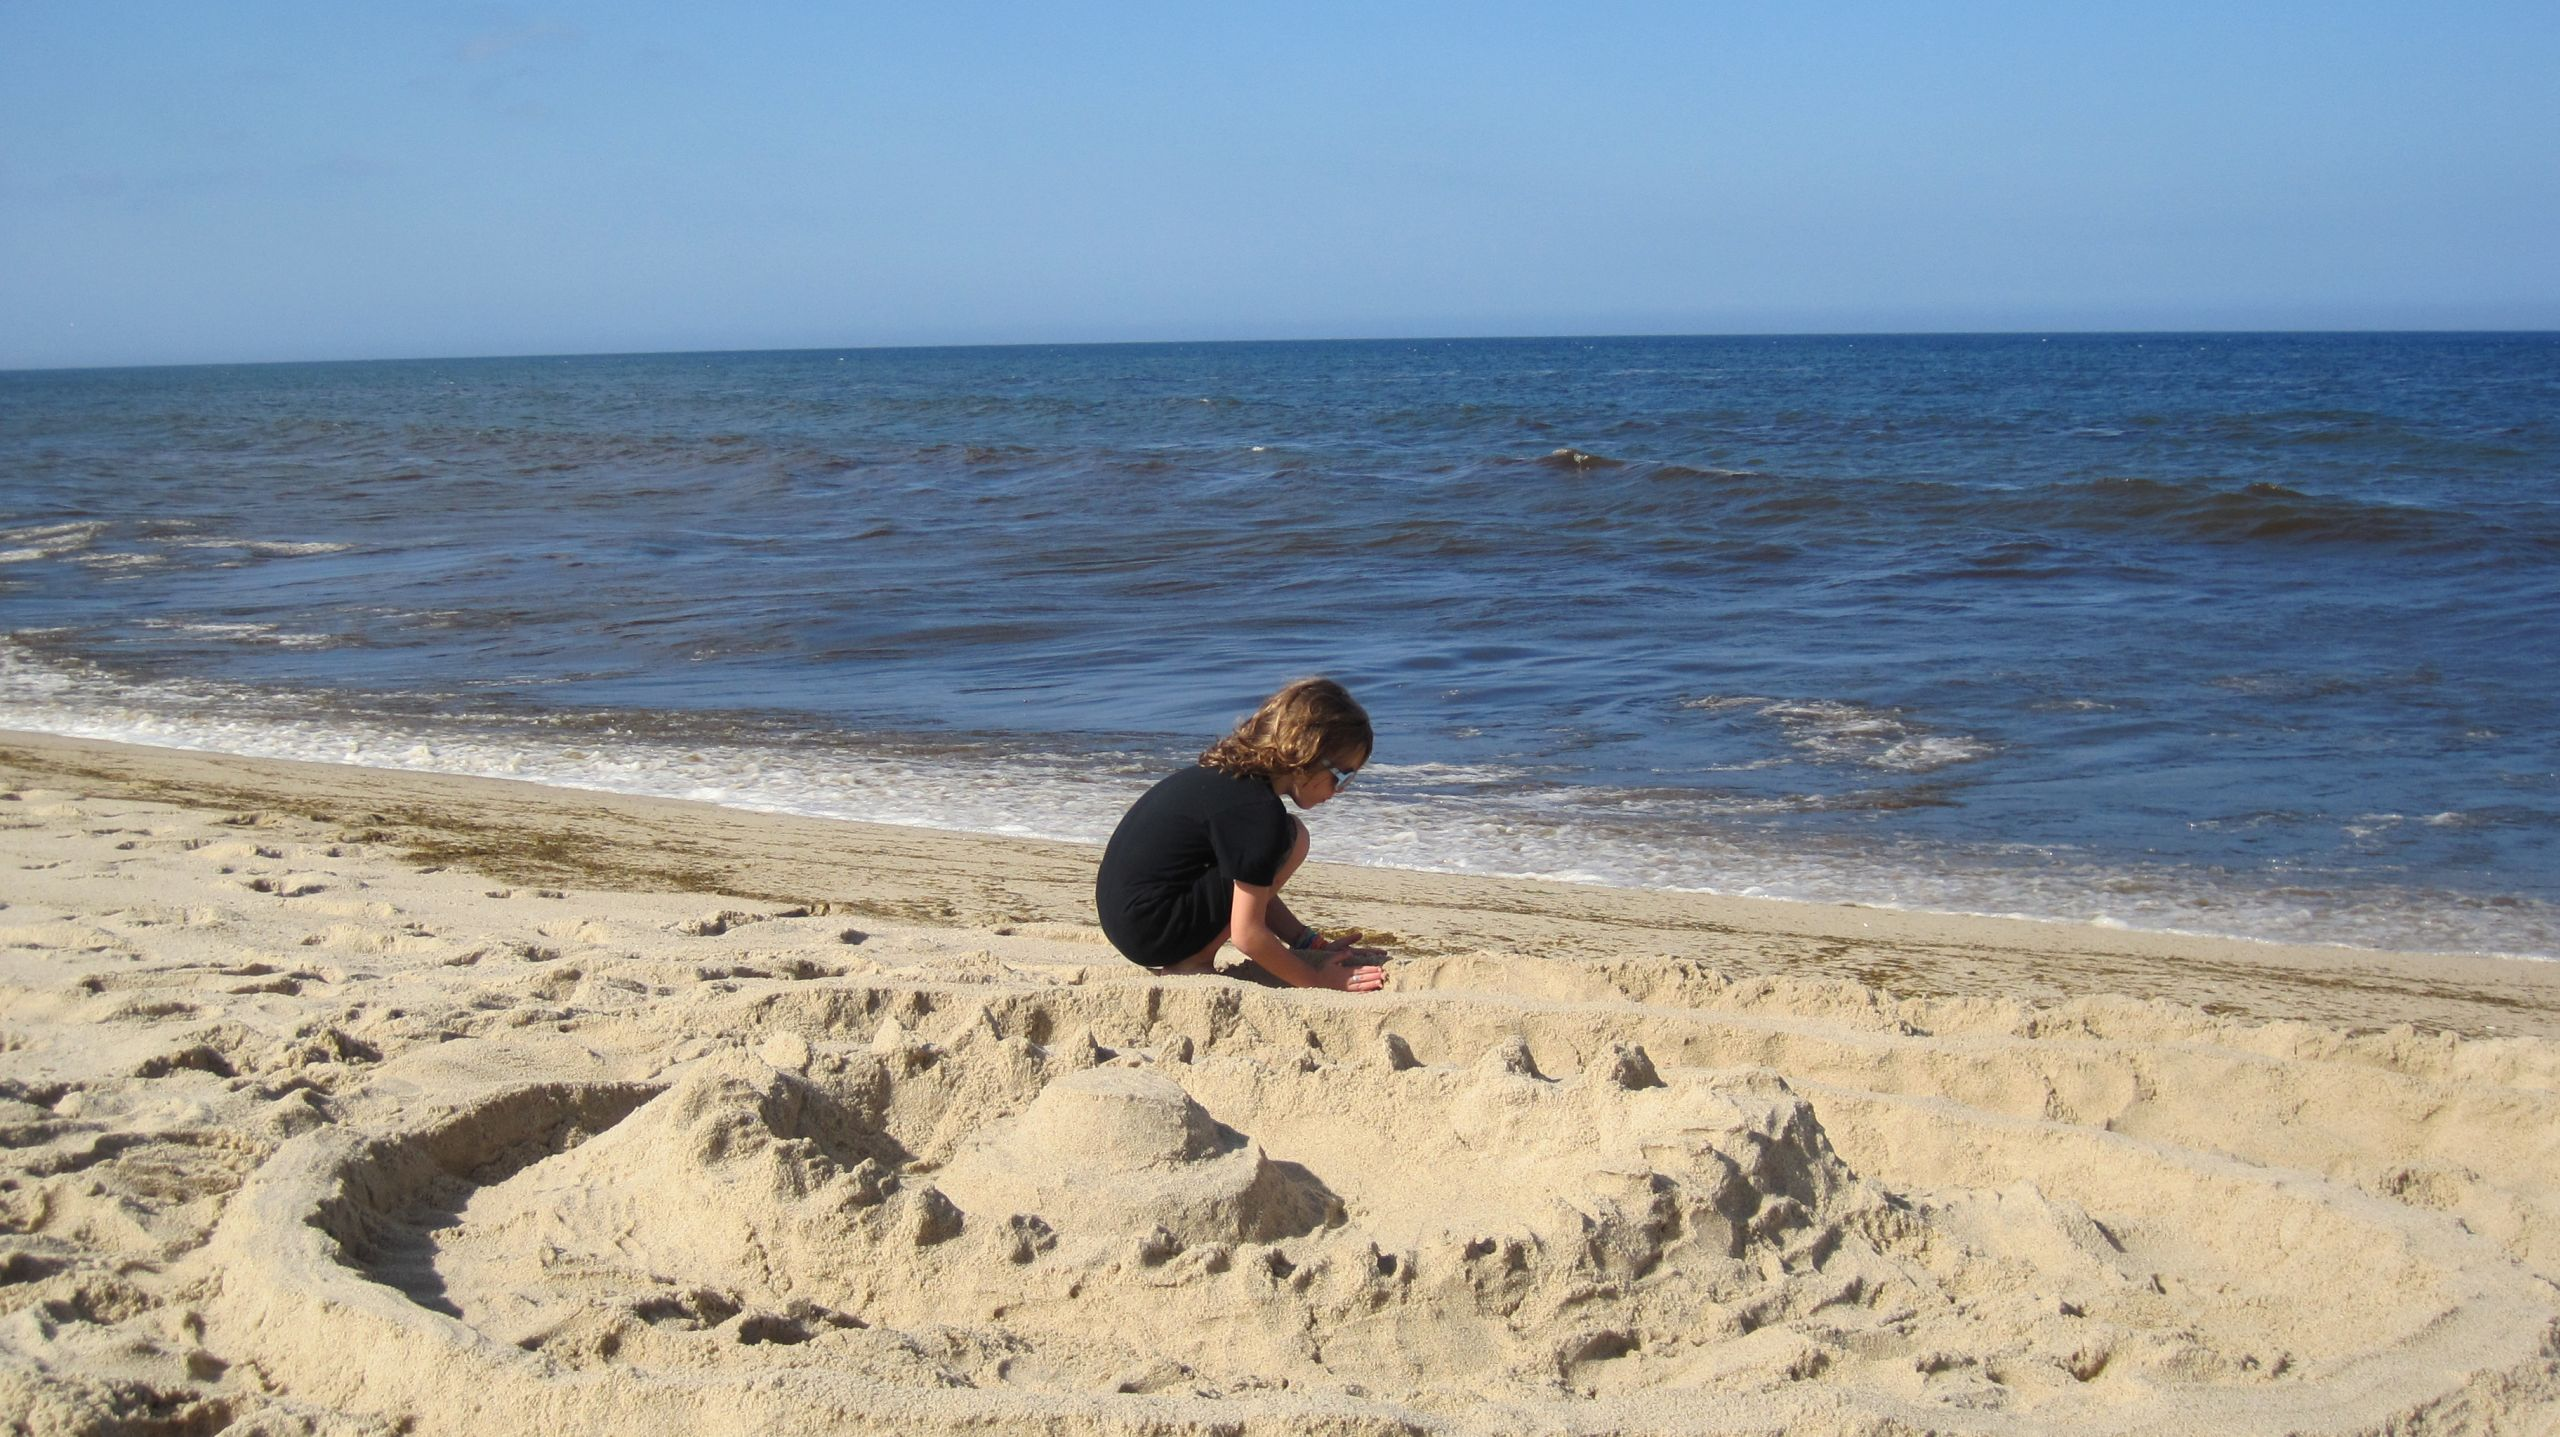 SAND CASTLE AT NEWCOMB HOLLOW